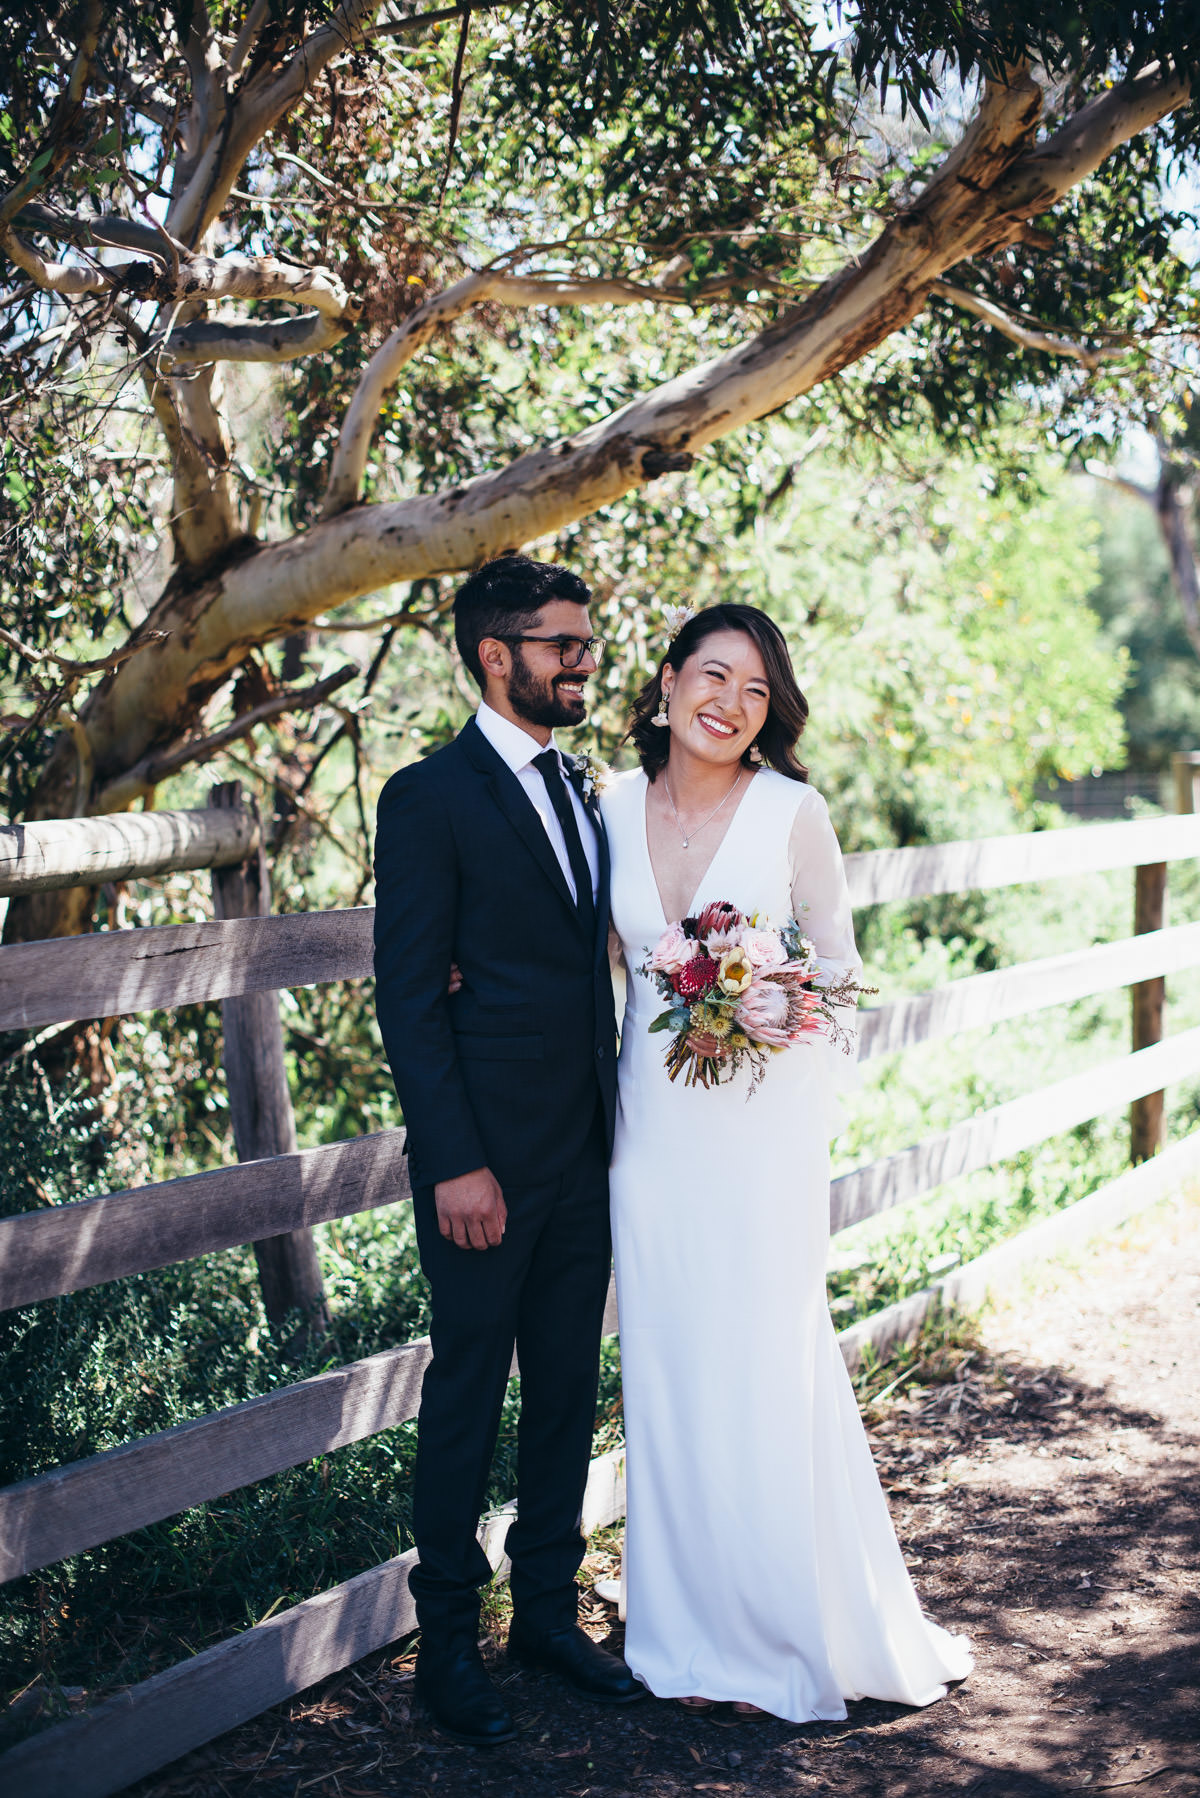 Tiffany & Reuben's Relaxed Cocktail Wedding At Collingwood Children's Farm